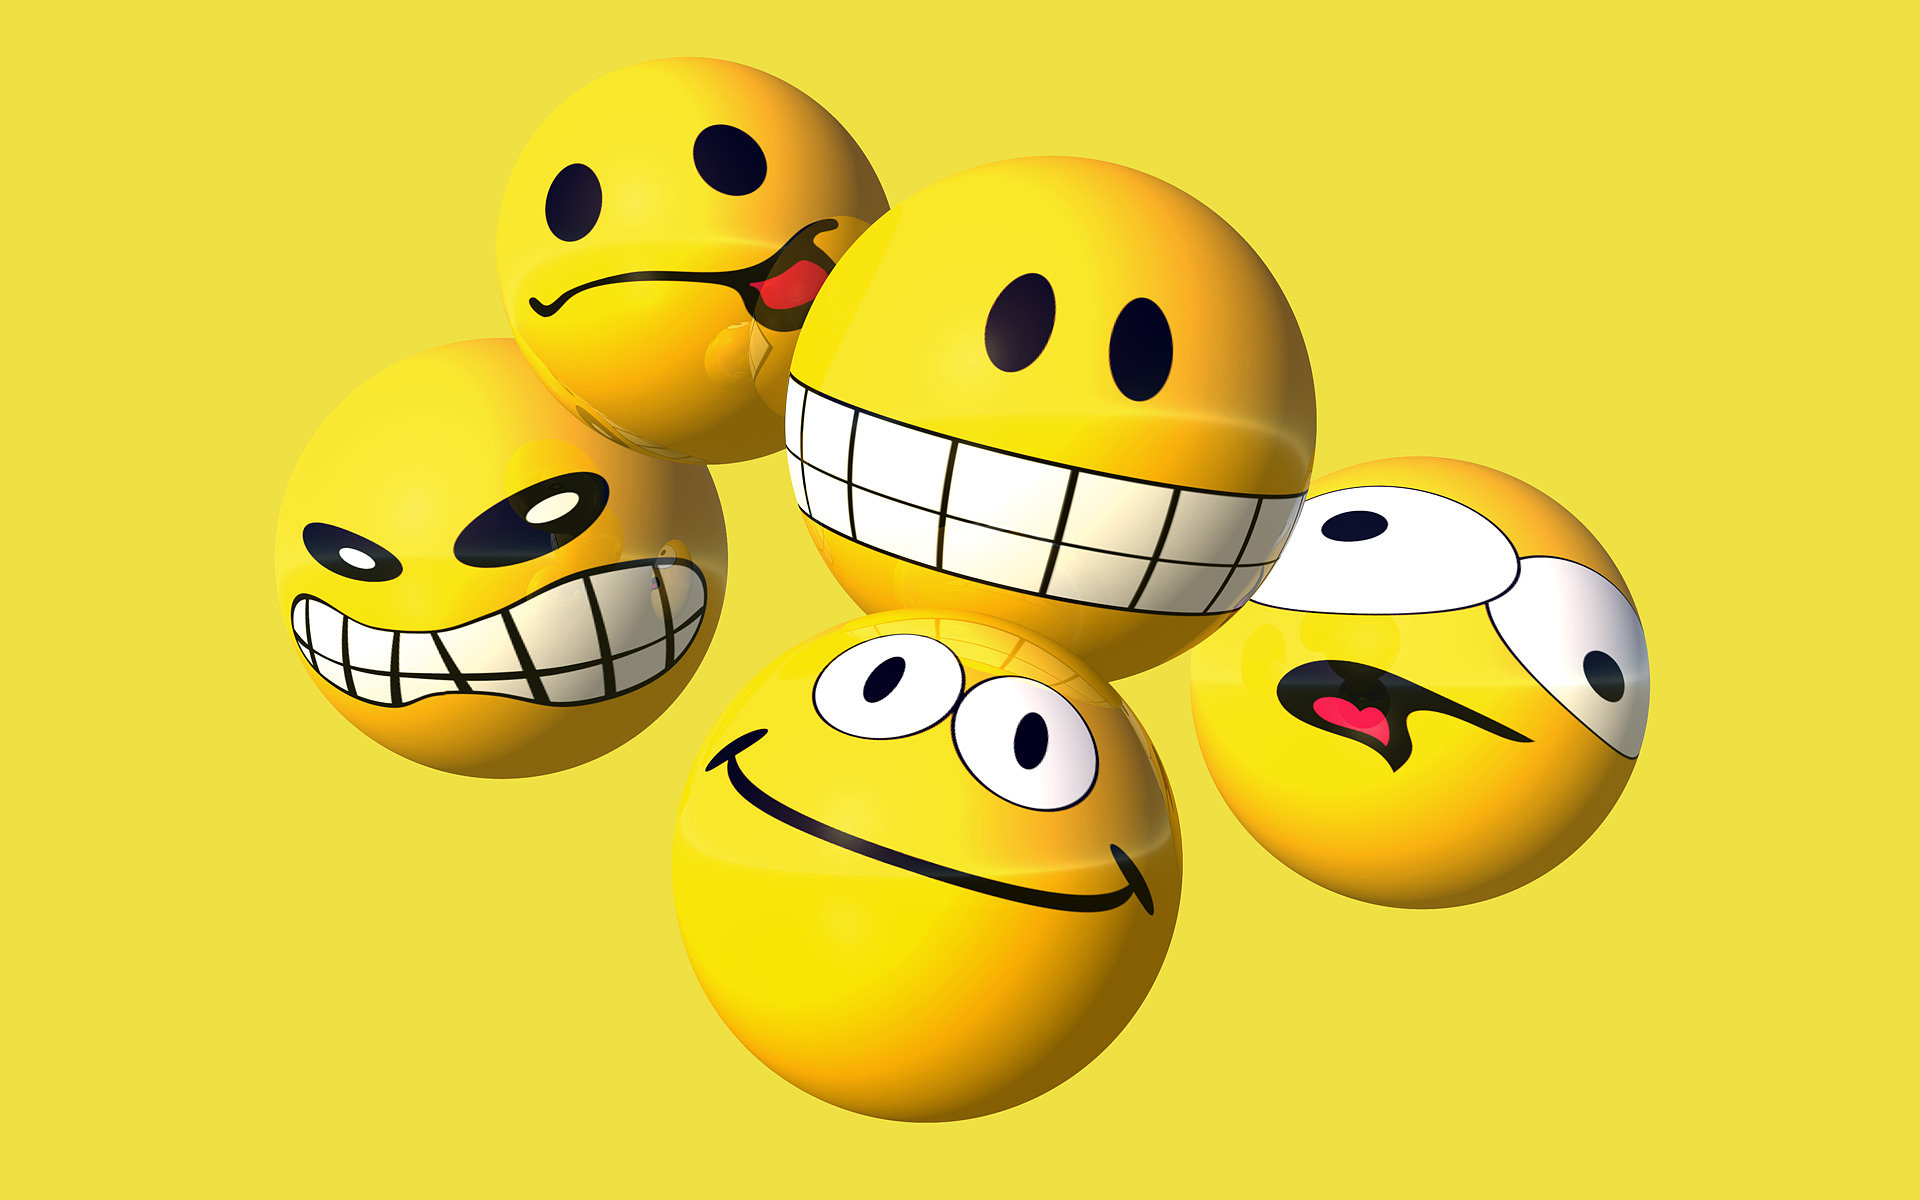 Smiley Full Hd Wallpaper And Achtergrond: Smiley Happy Full HD Wallpaper And Background Image